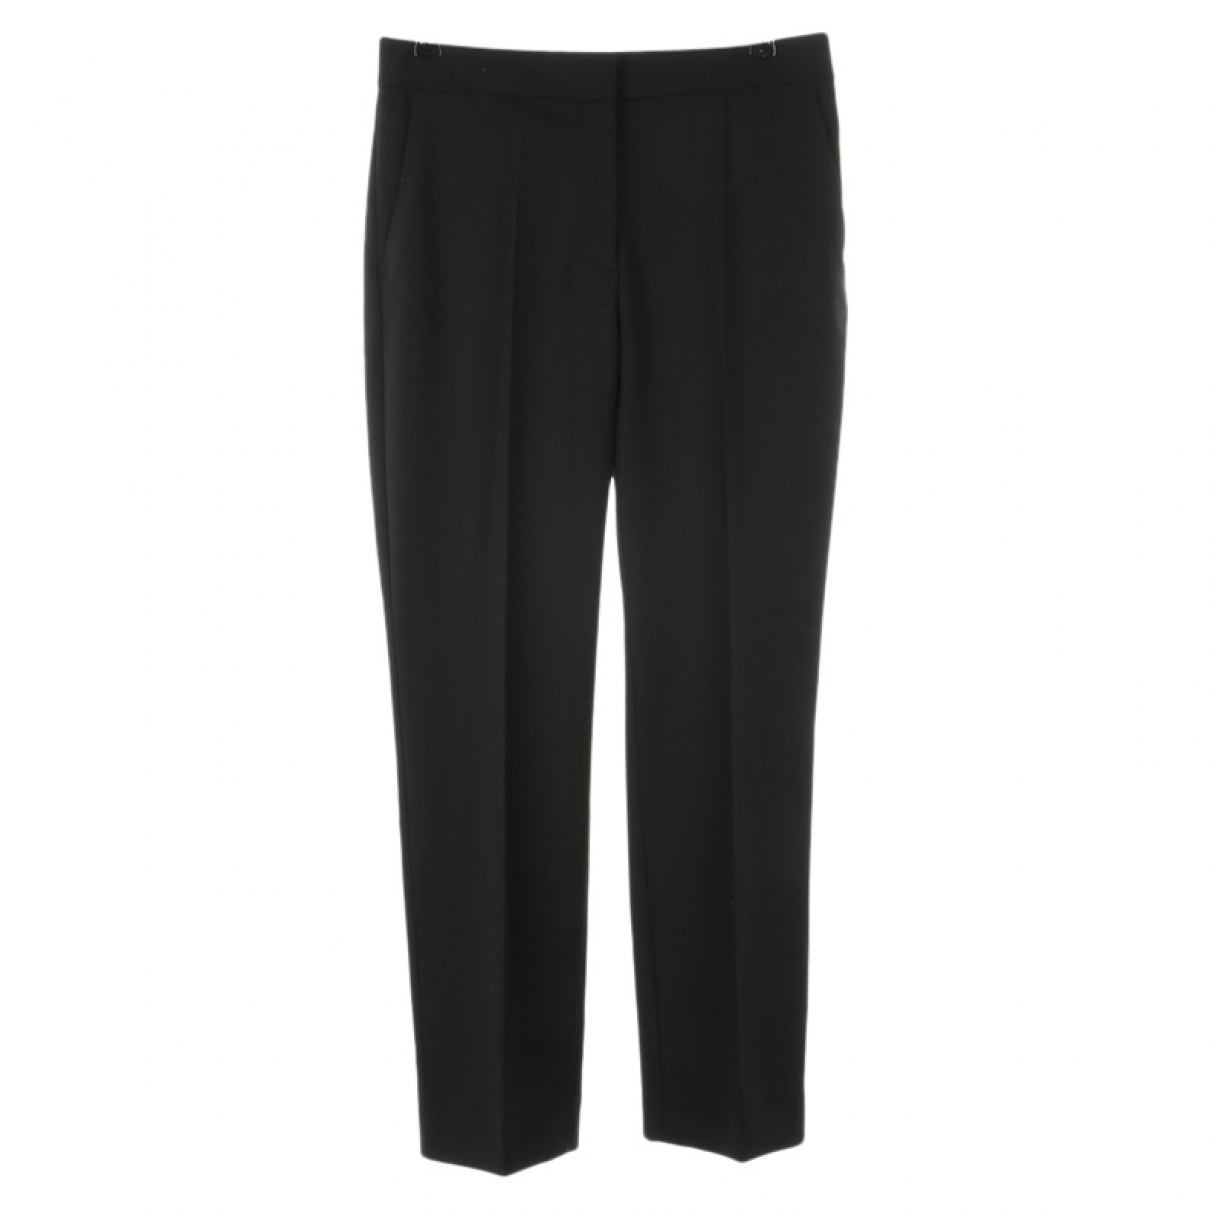 Victoria Beckham \N Black Trousers for Women 36 FR